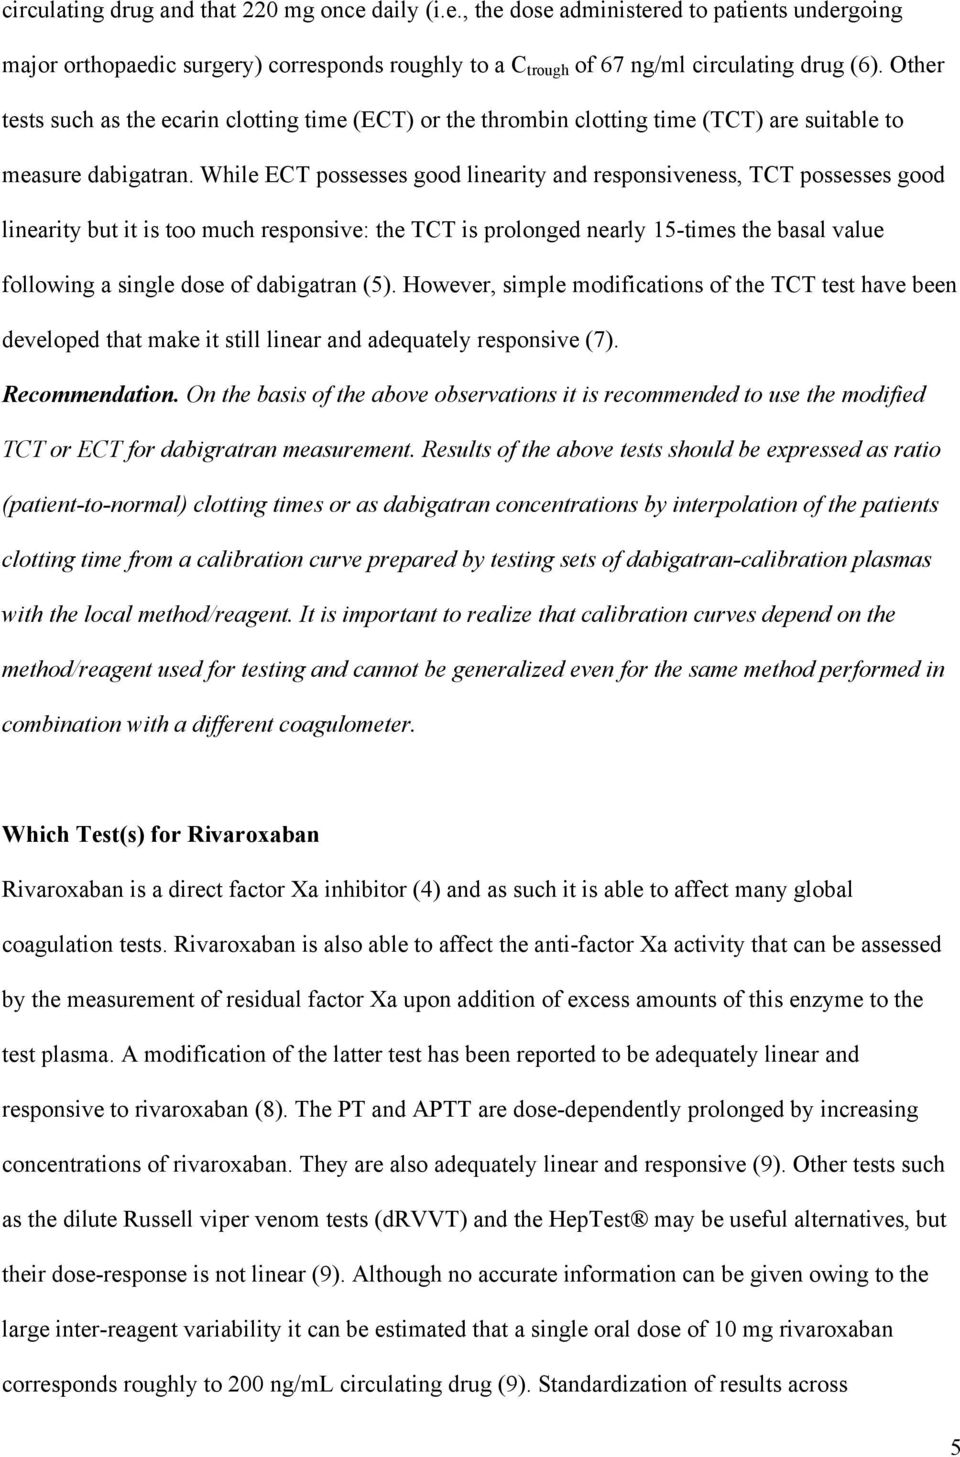 While ECT possesses good linearity and responsiveness, TCT possesses good linearity but it is too much responsive: the TCT is prolonged nearly 15-times the basal value following a single dose of